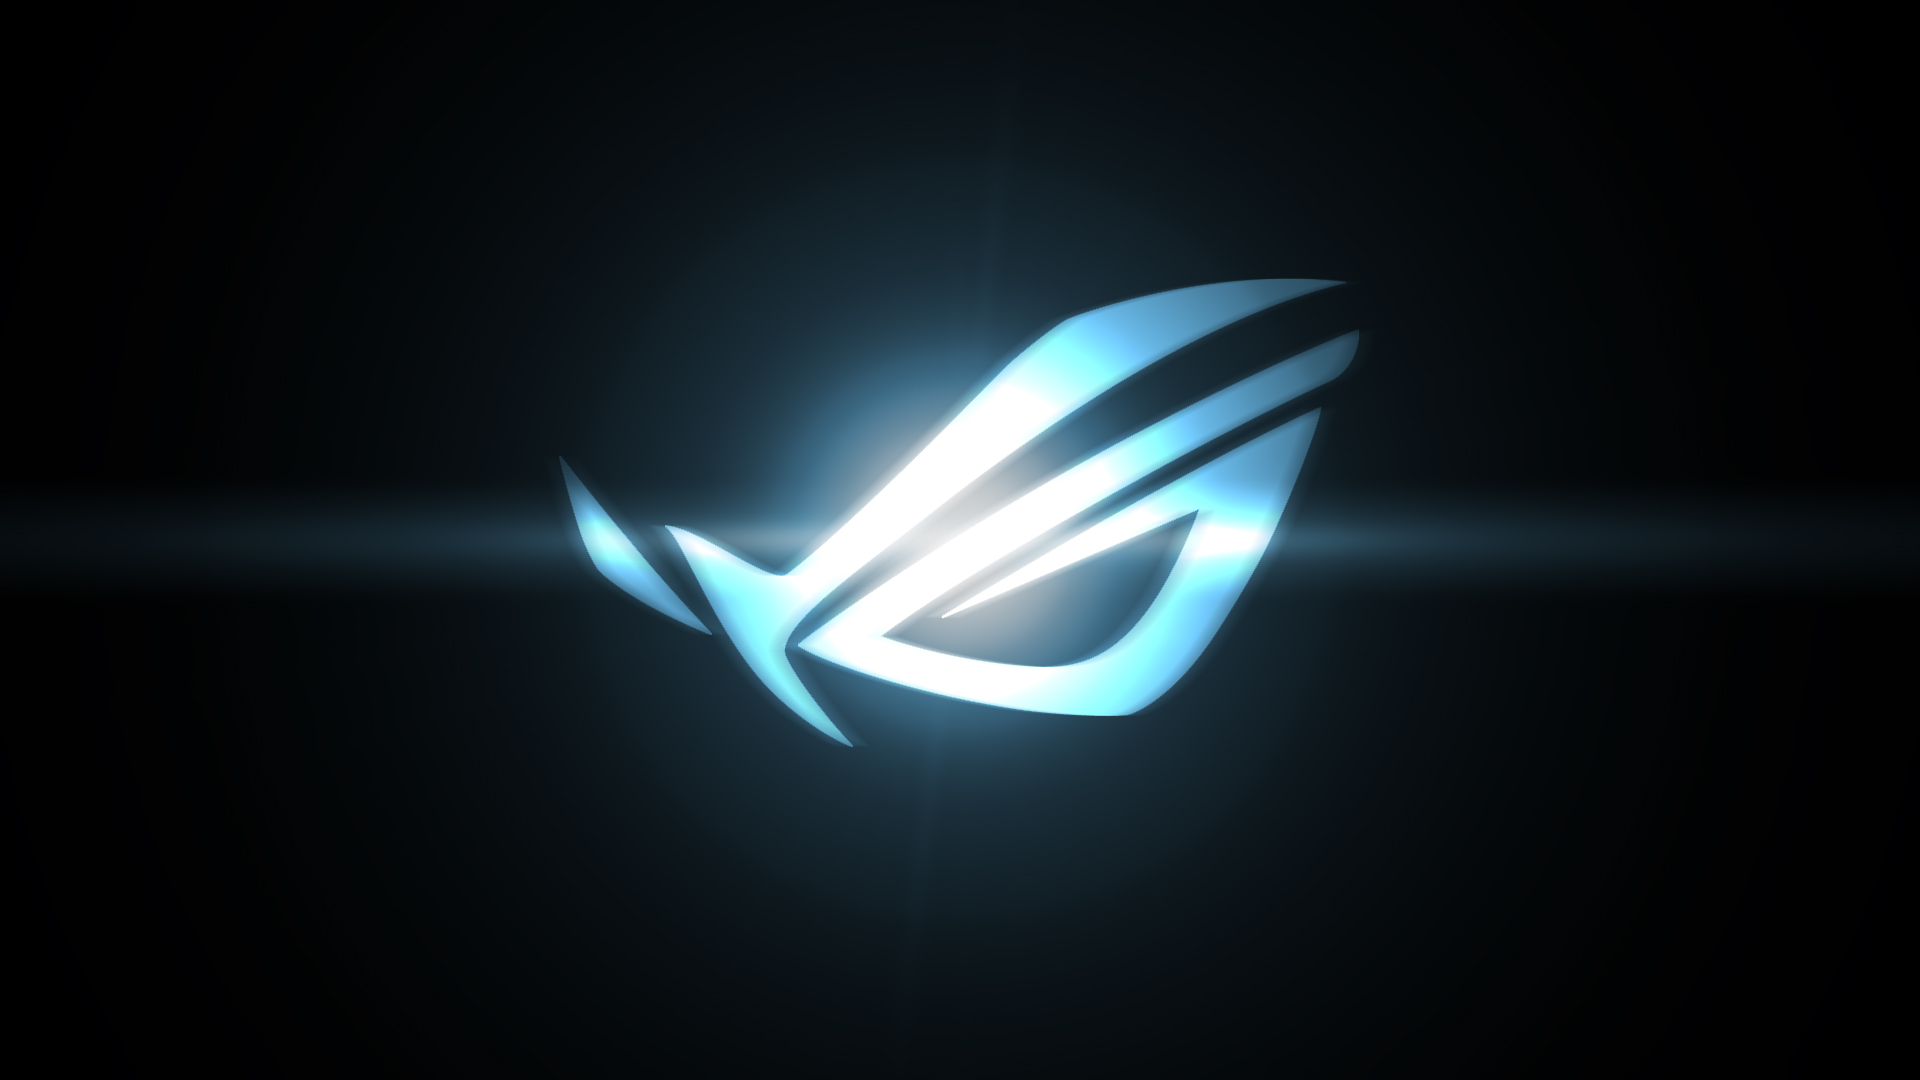 Asus Computer Wallpapers Desktop Backgrounds 1920x1080 ID177571 1920x1080